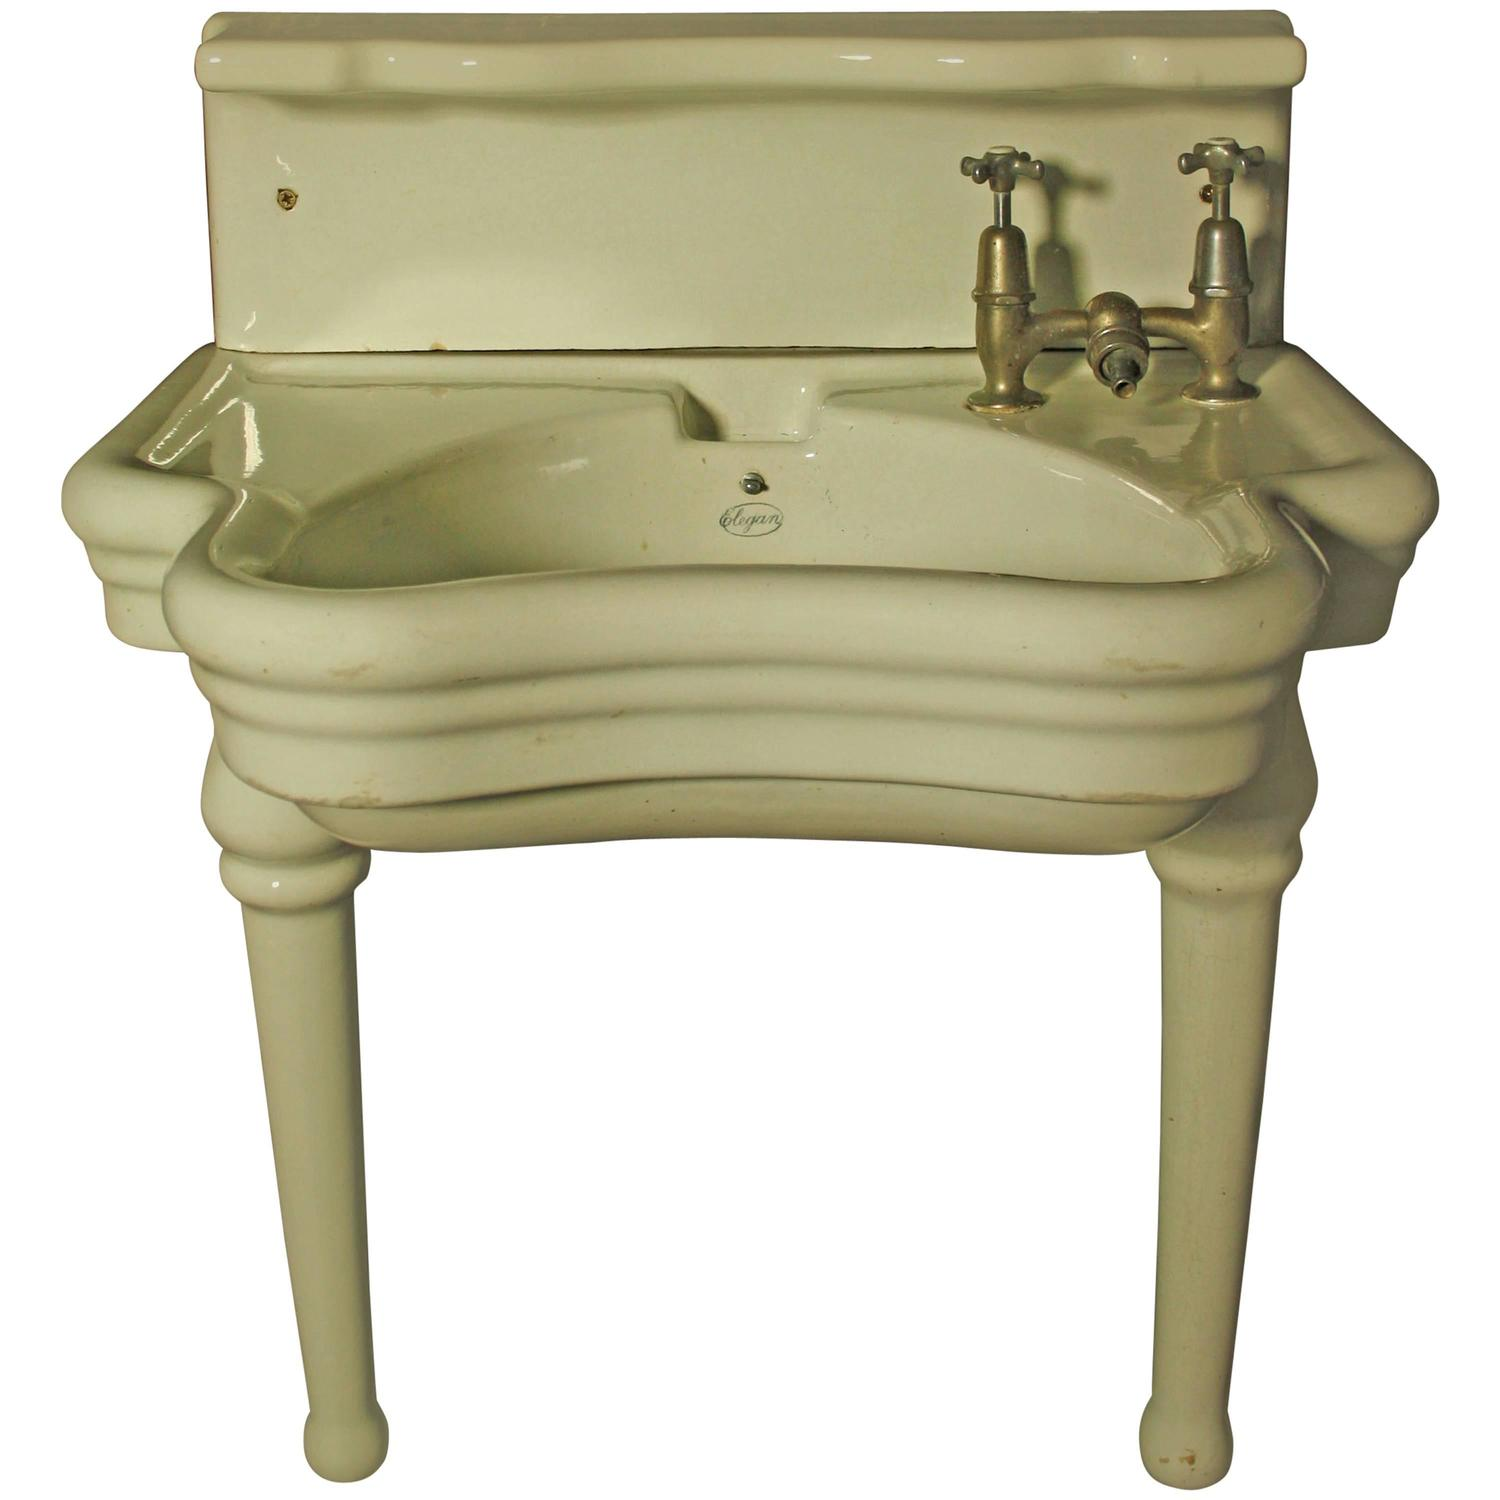 Rare English Barber Shop Wash Basin or Sink by Elegan For Sale at ...